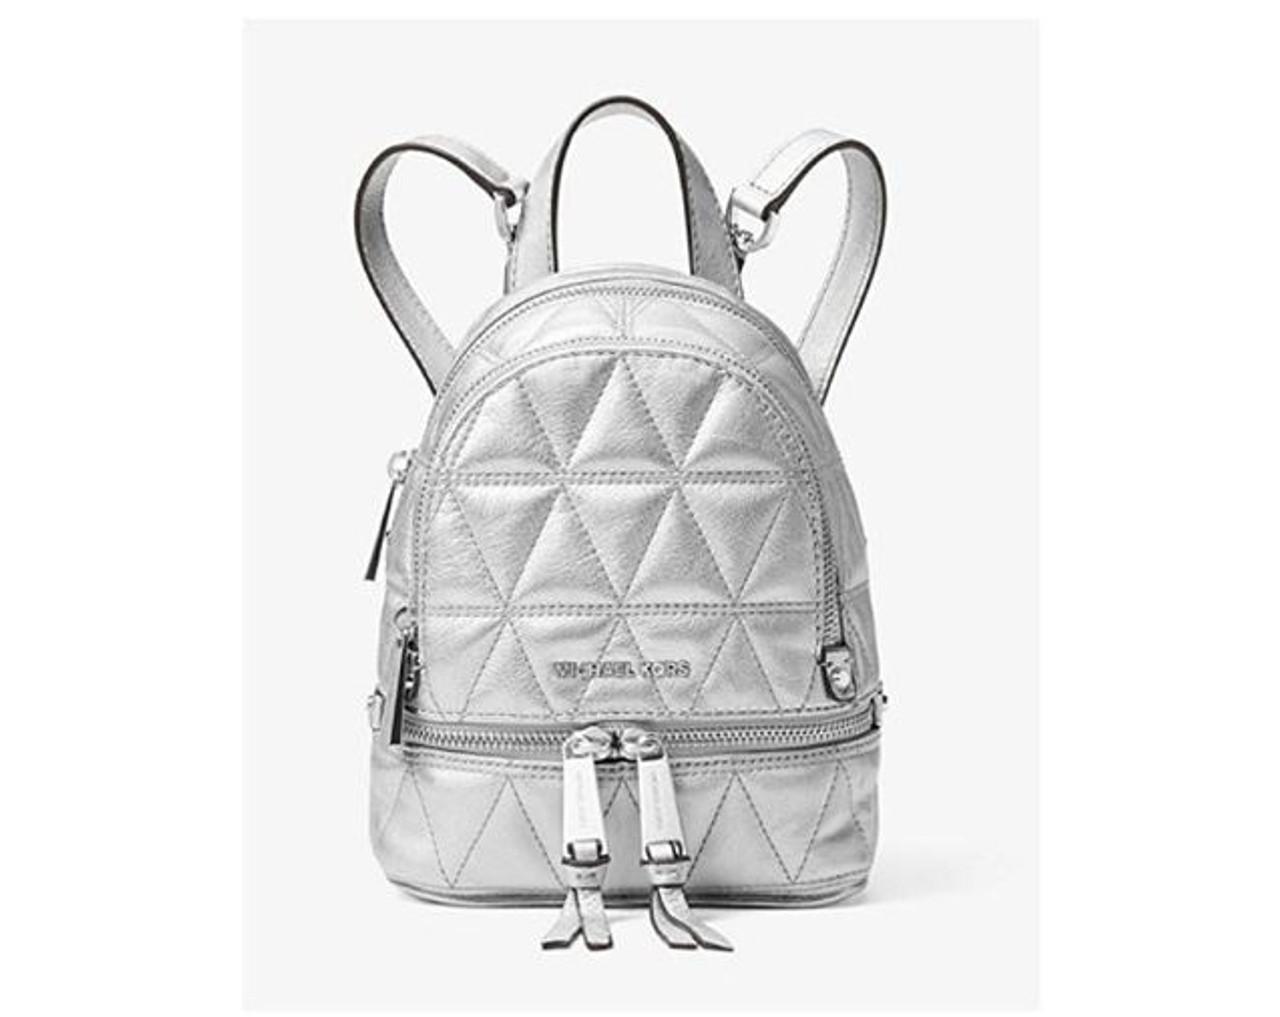 ae1af74d1f525 MICHAEL Michael Kors Rhea Mini Metallic Quilted Leather Backpack in Silver  30S8MEZBOK-040